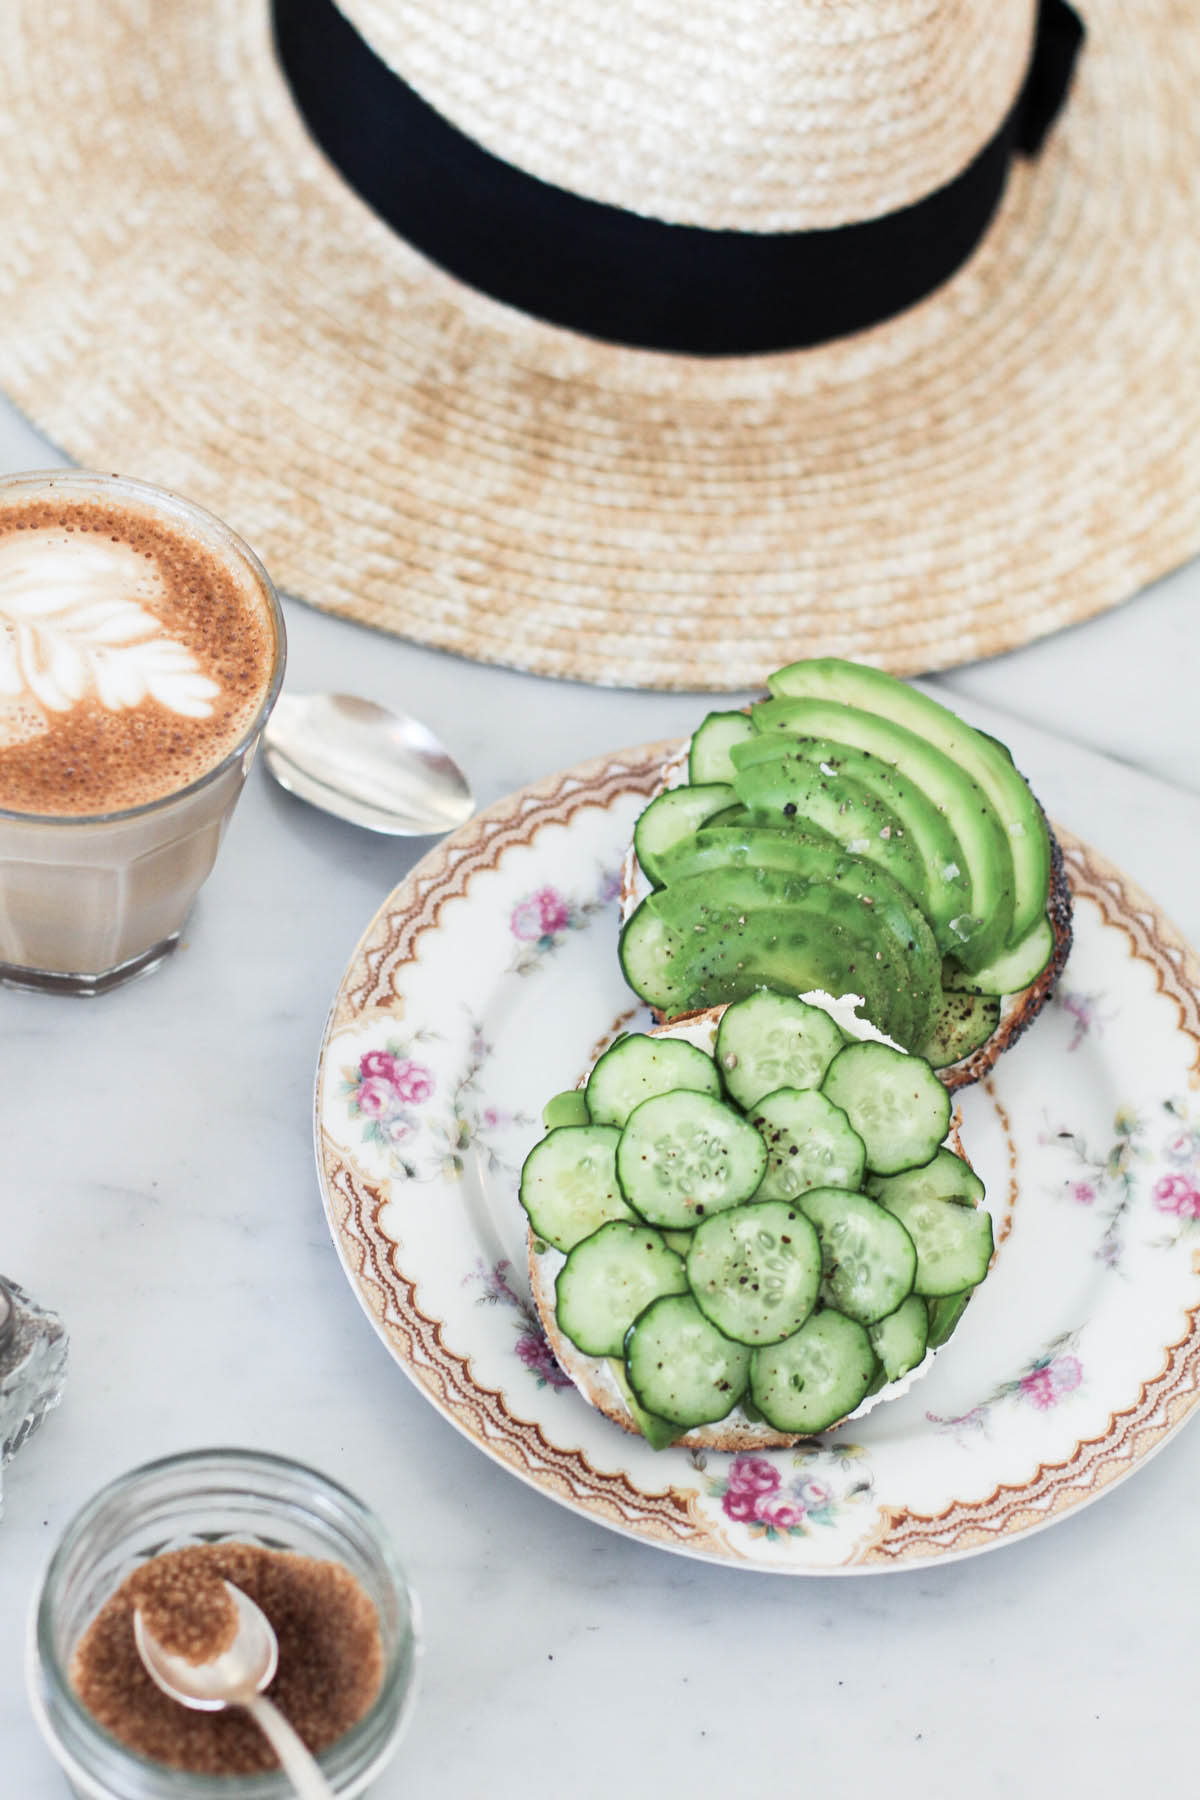 latte and cucumber avocado bagel at 20th century cafe san francisco